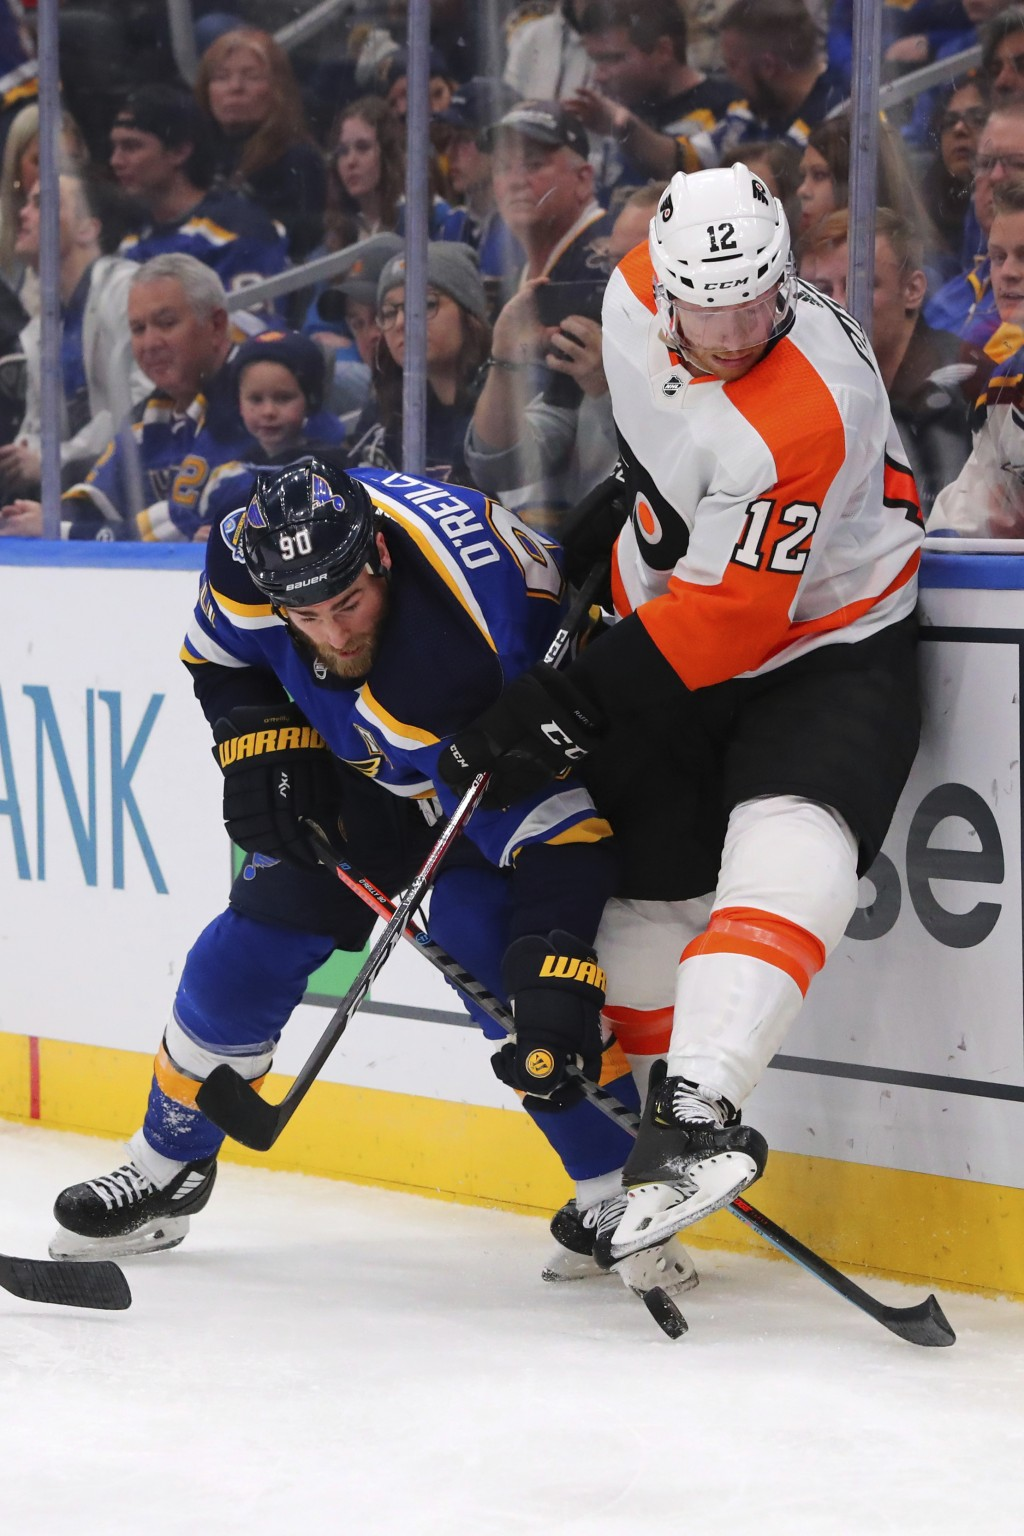 St. Louis Blues center Ryan O'Reilly (90) fights Philadelphia Flyers forward Michael Raffl (12) of Austria during the second period of an NHL hockey g...